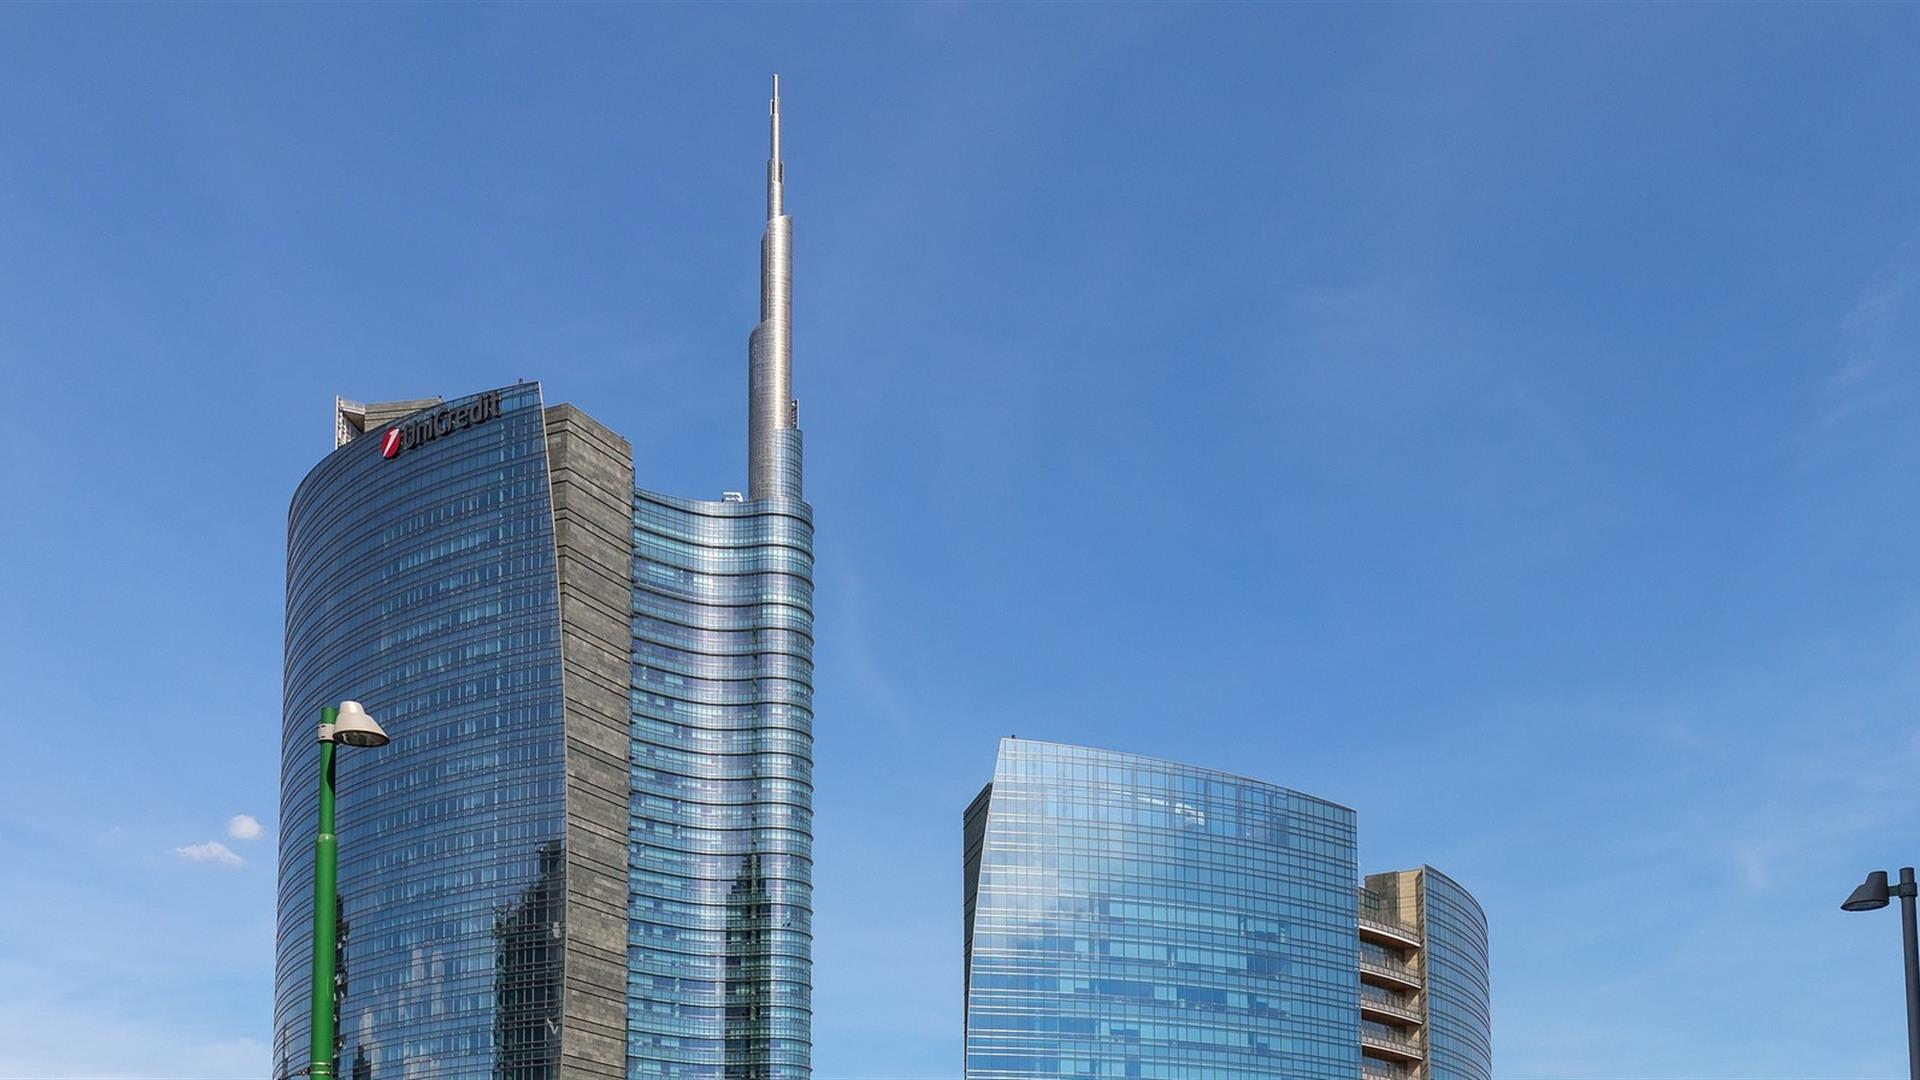 Unicredit Tower Robertoangaroni Pixabay